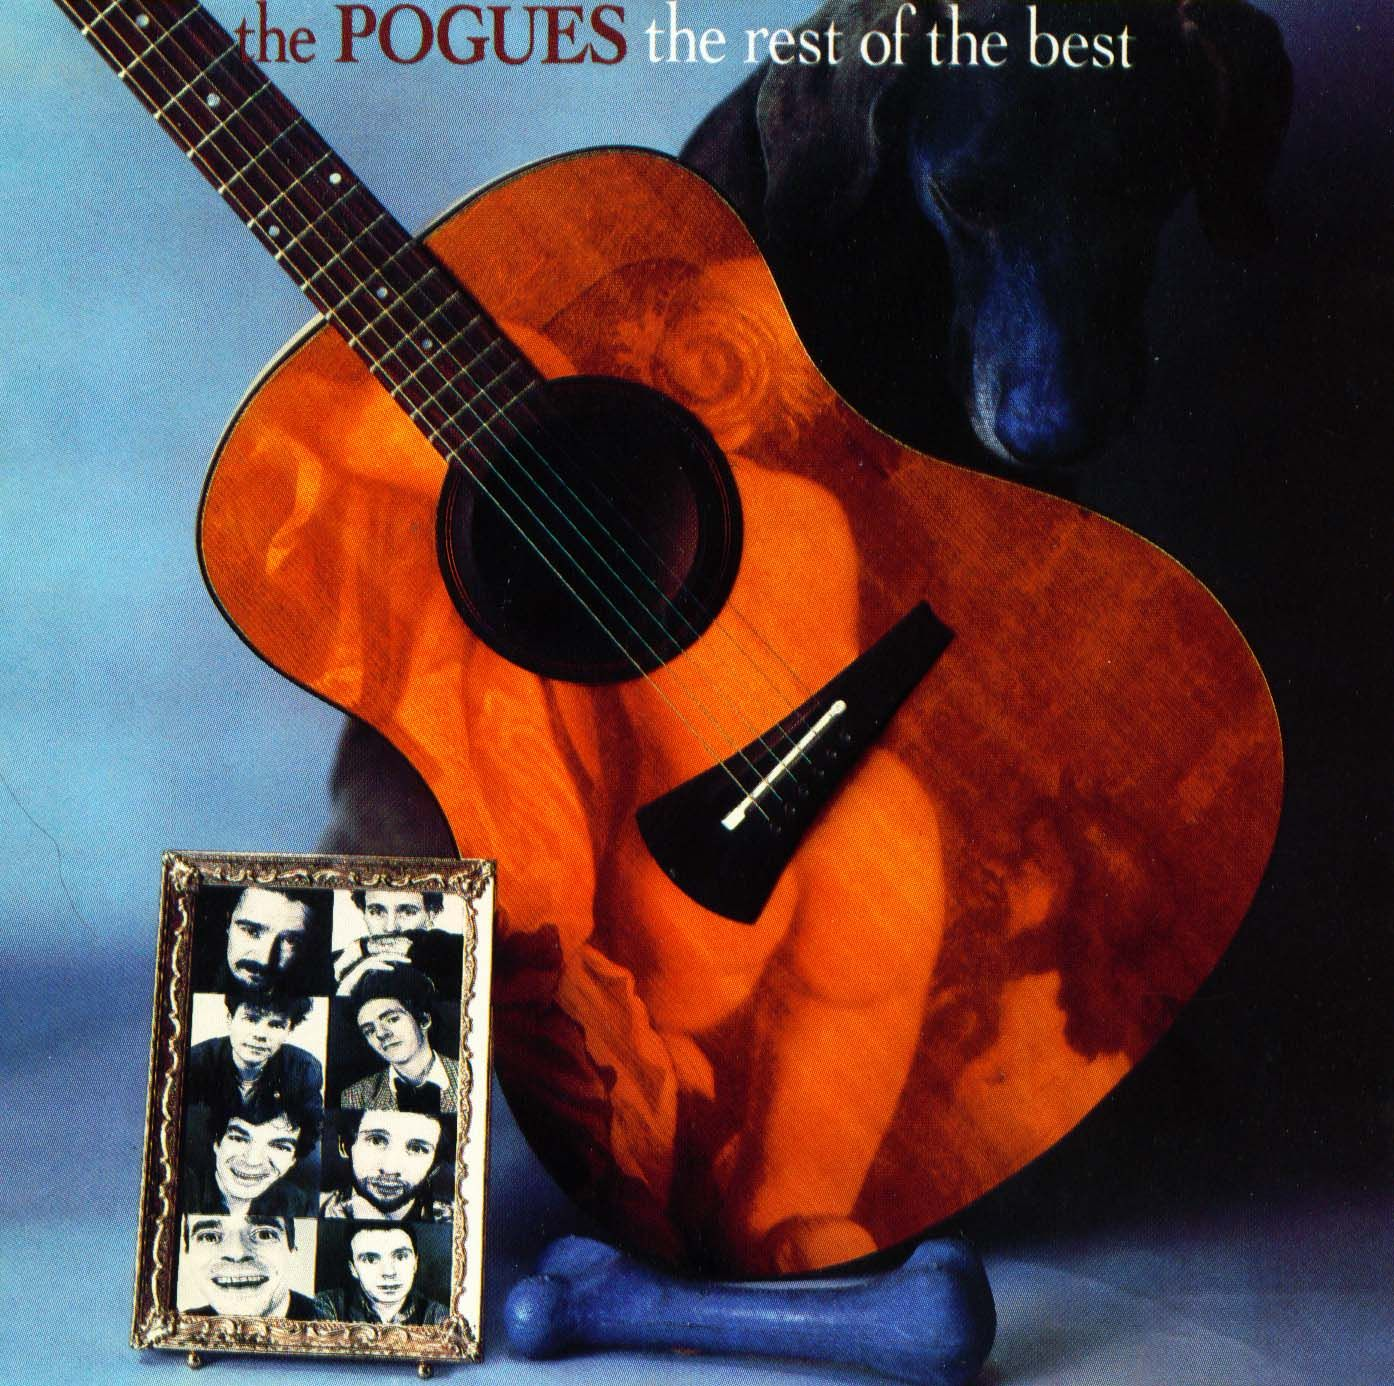 The Pogues - The Very Best Of album cover